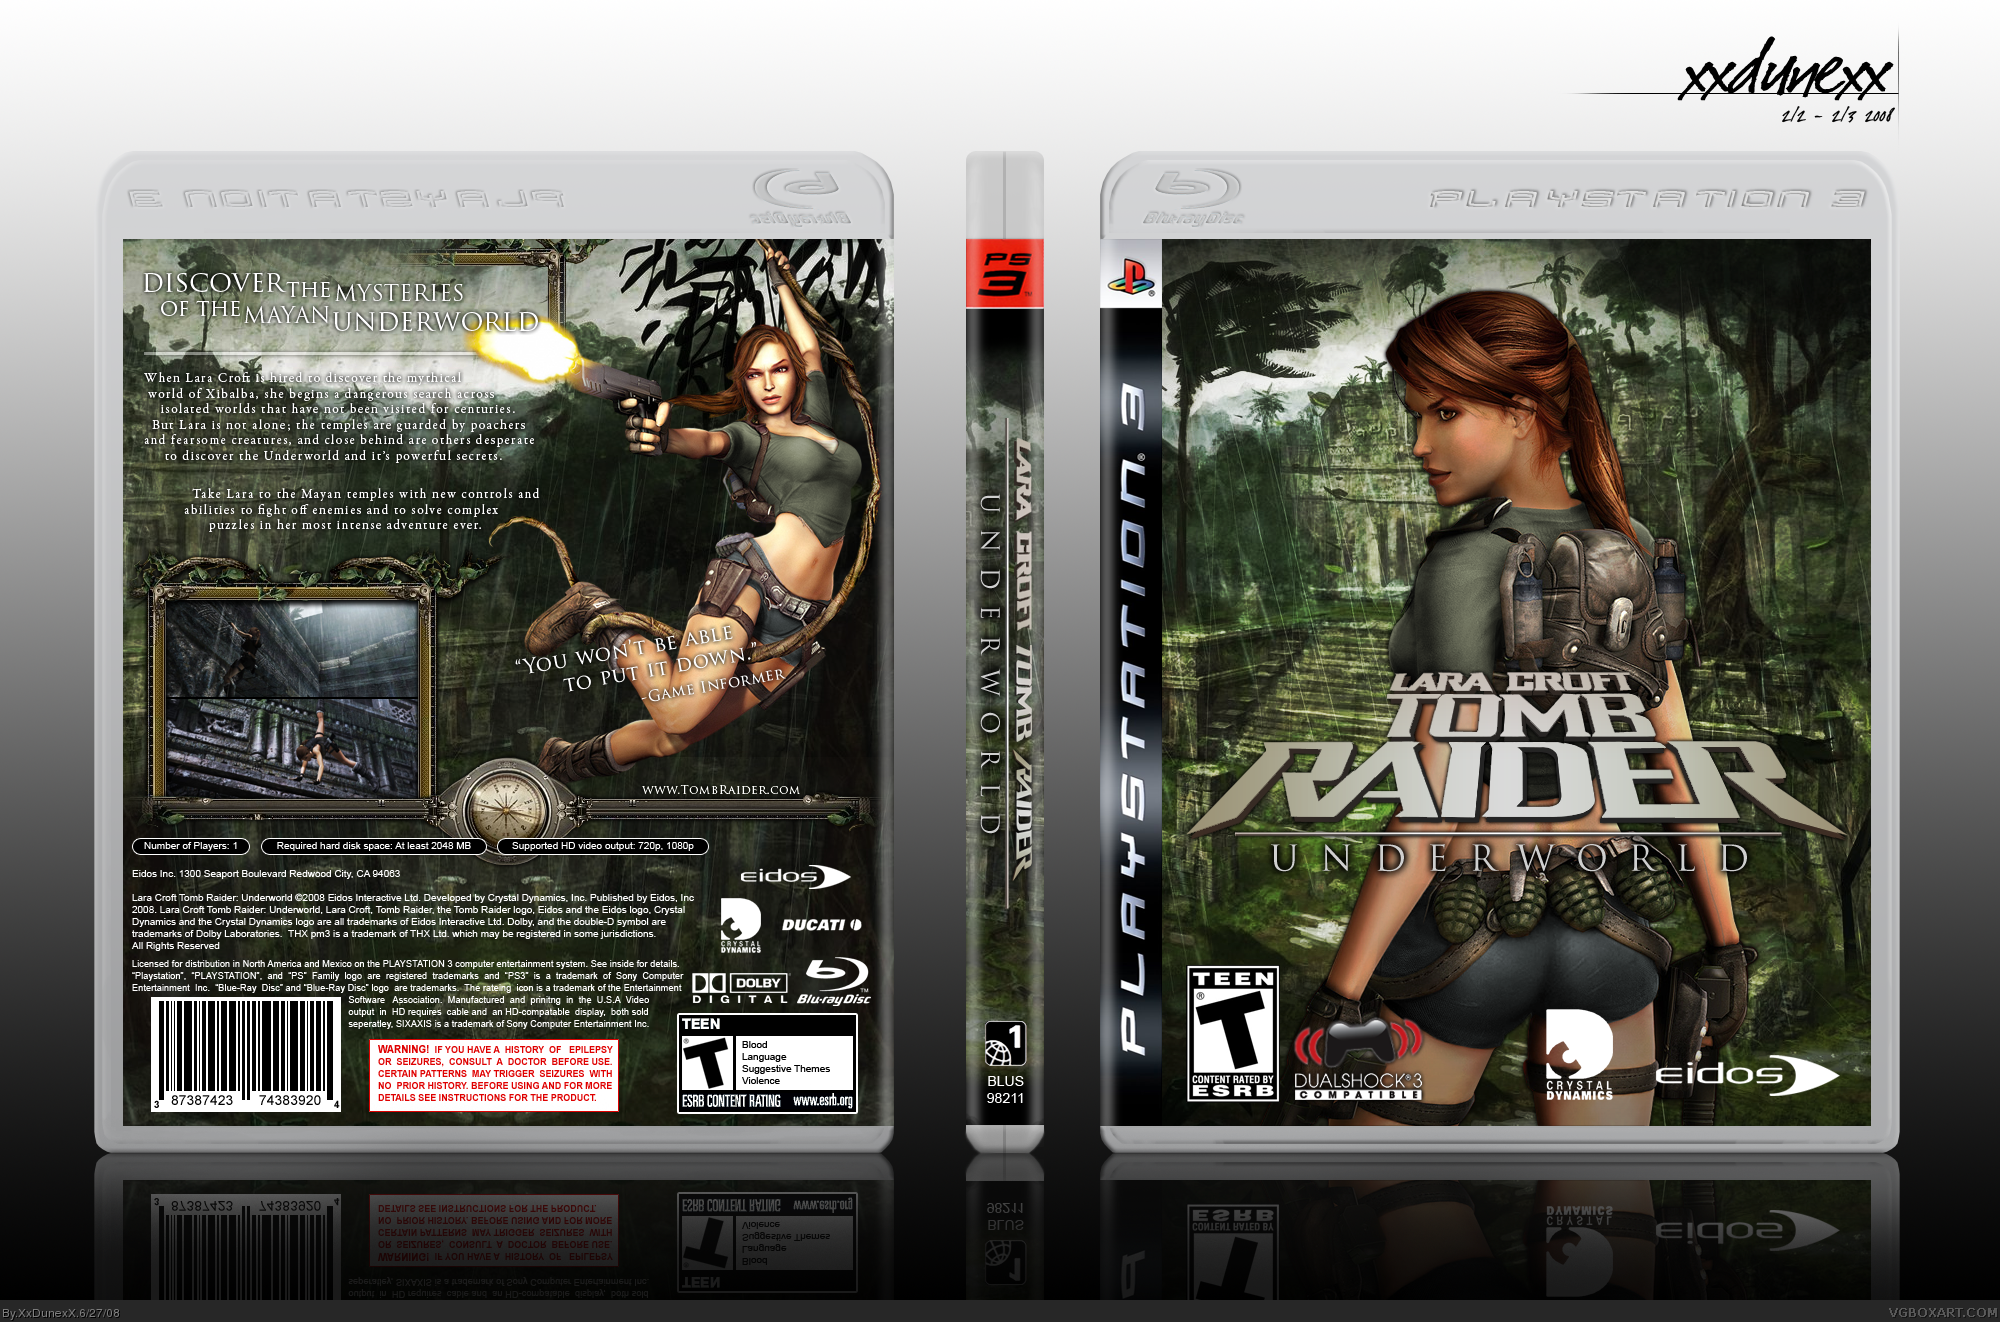 Tomb raider underworld patch softcore clips